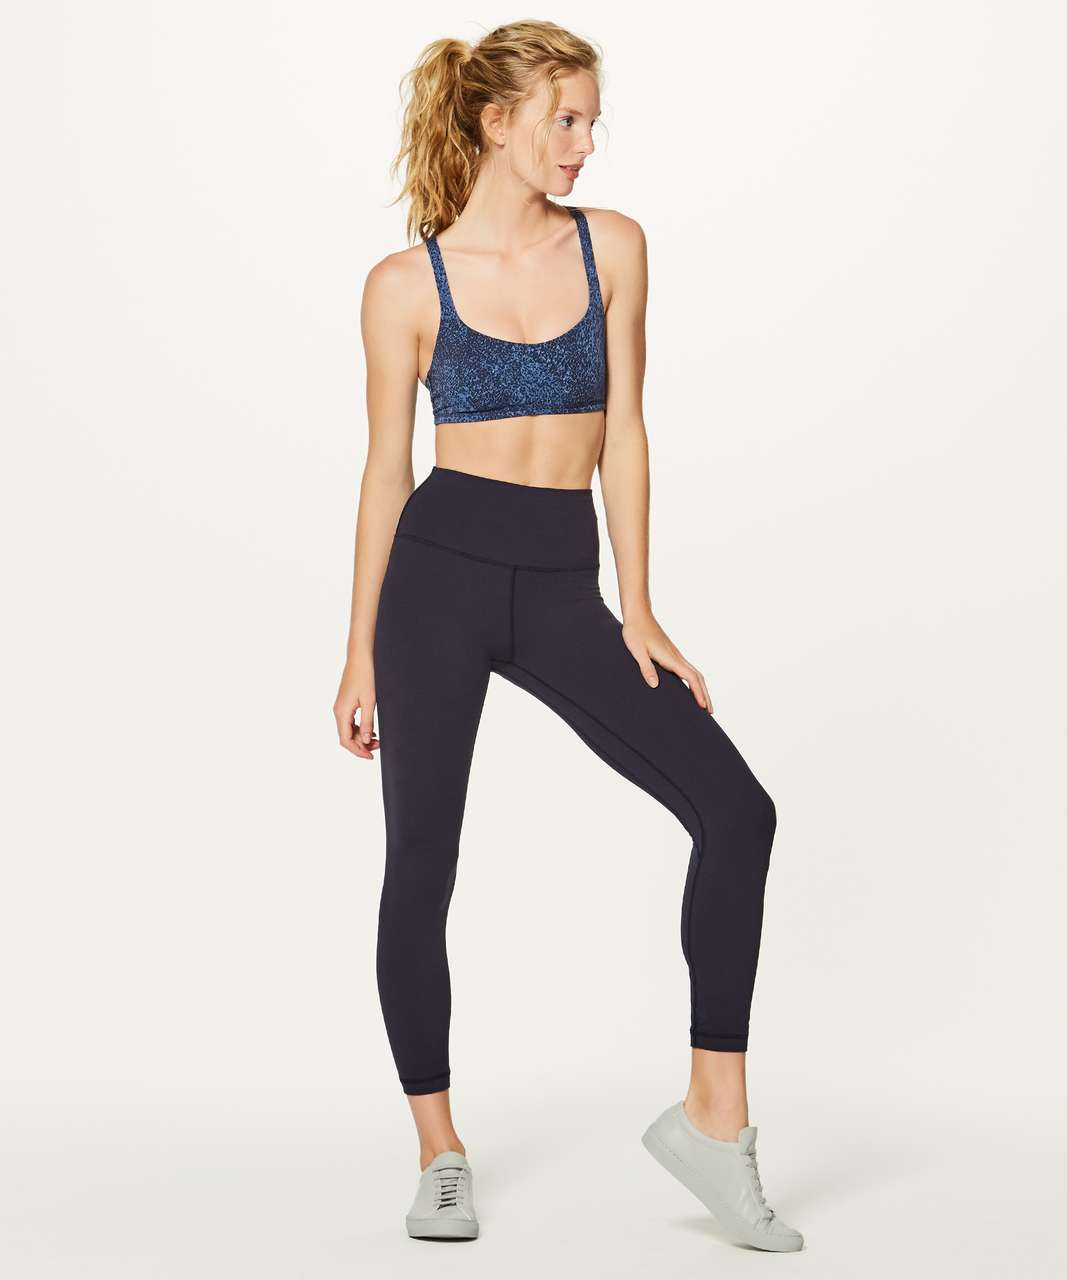 Lululemon Free To Be Bra - Power Luxtreme Mineral Deposit Lunar Eclipse Royal